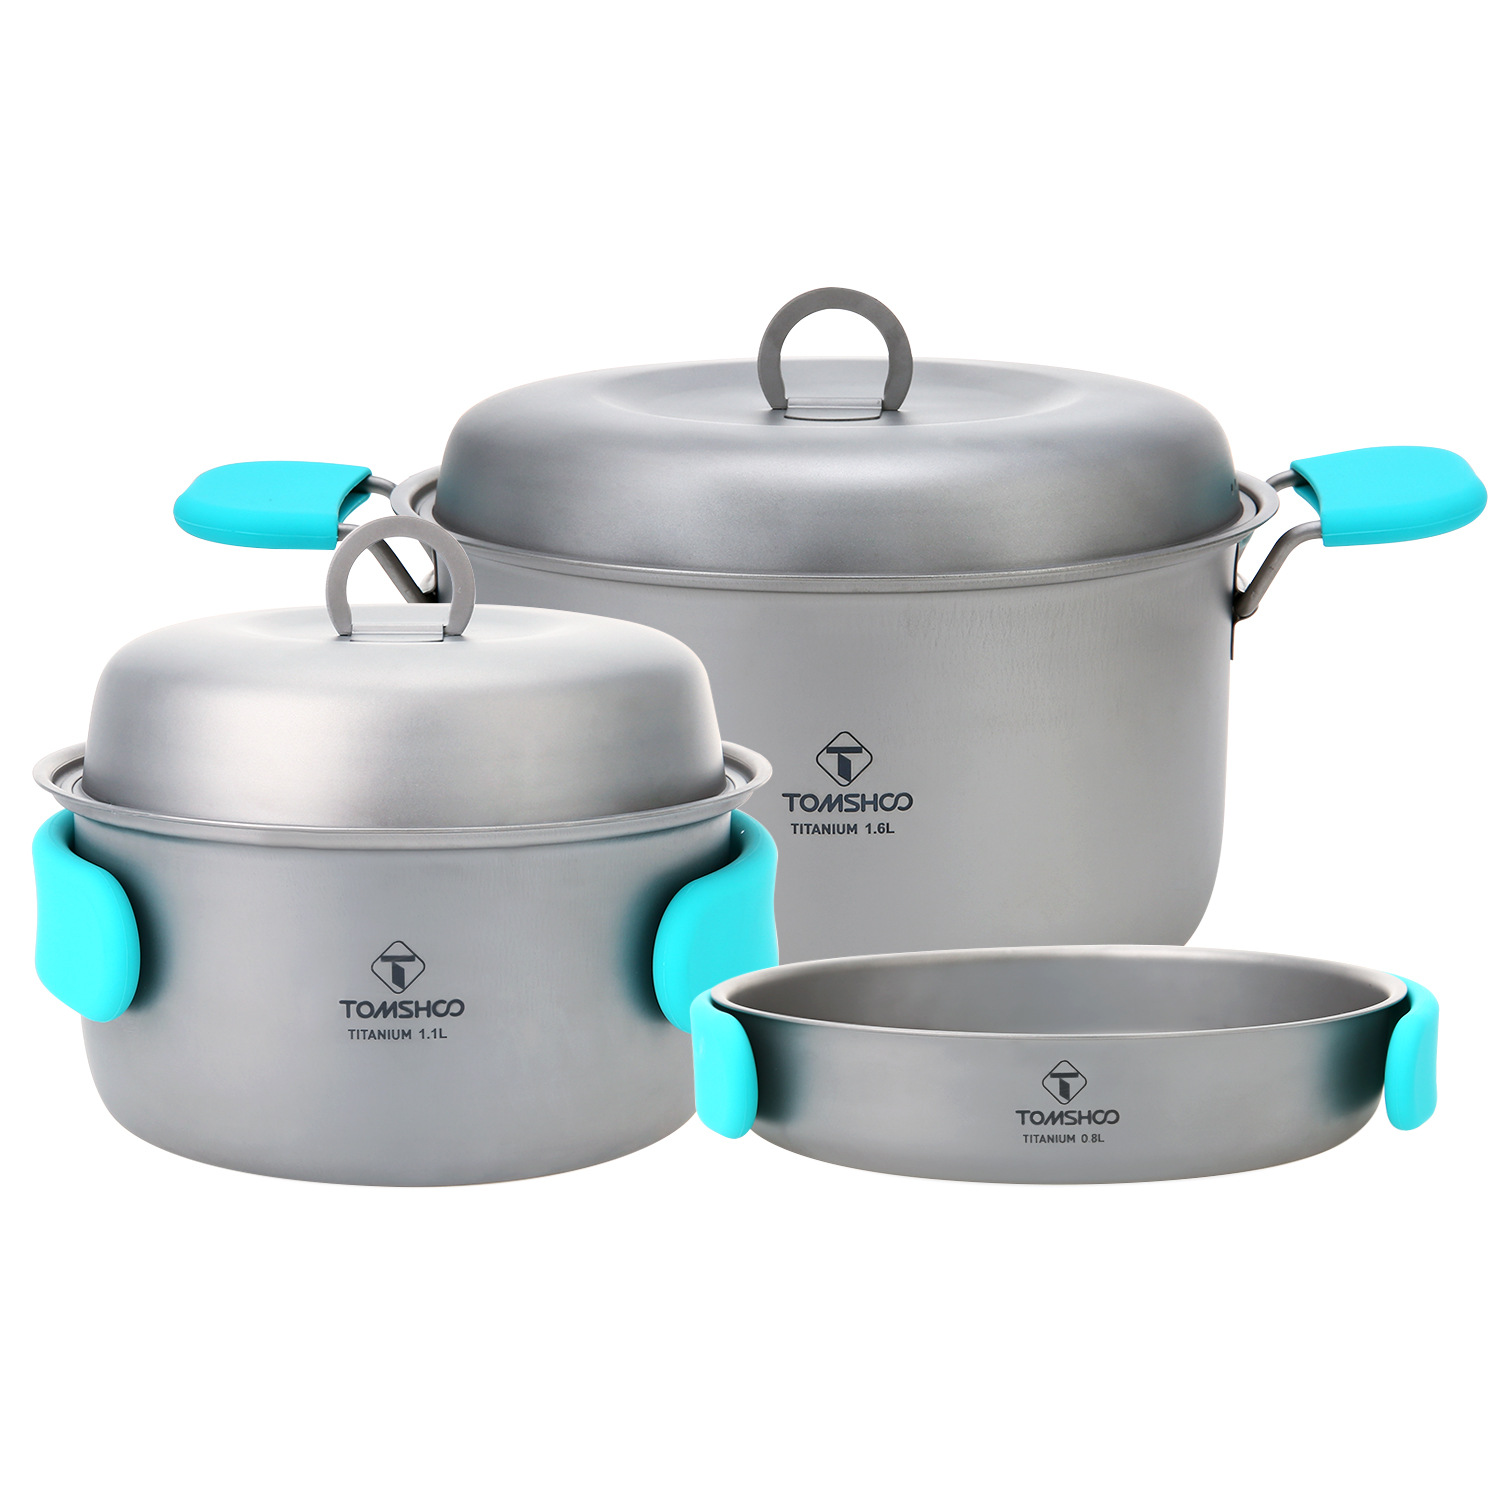 TOMSHOO 3 Piece Camping Cookware Titanium Pot Fry Pan Cook set Outdoor Cookware Backpacking Hiking Cooking